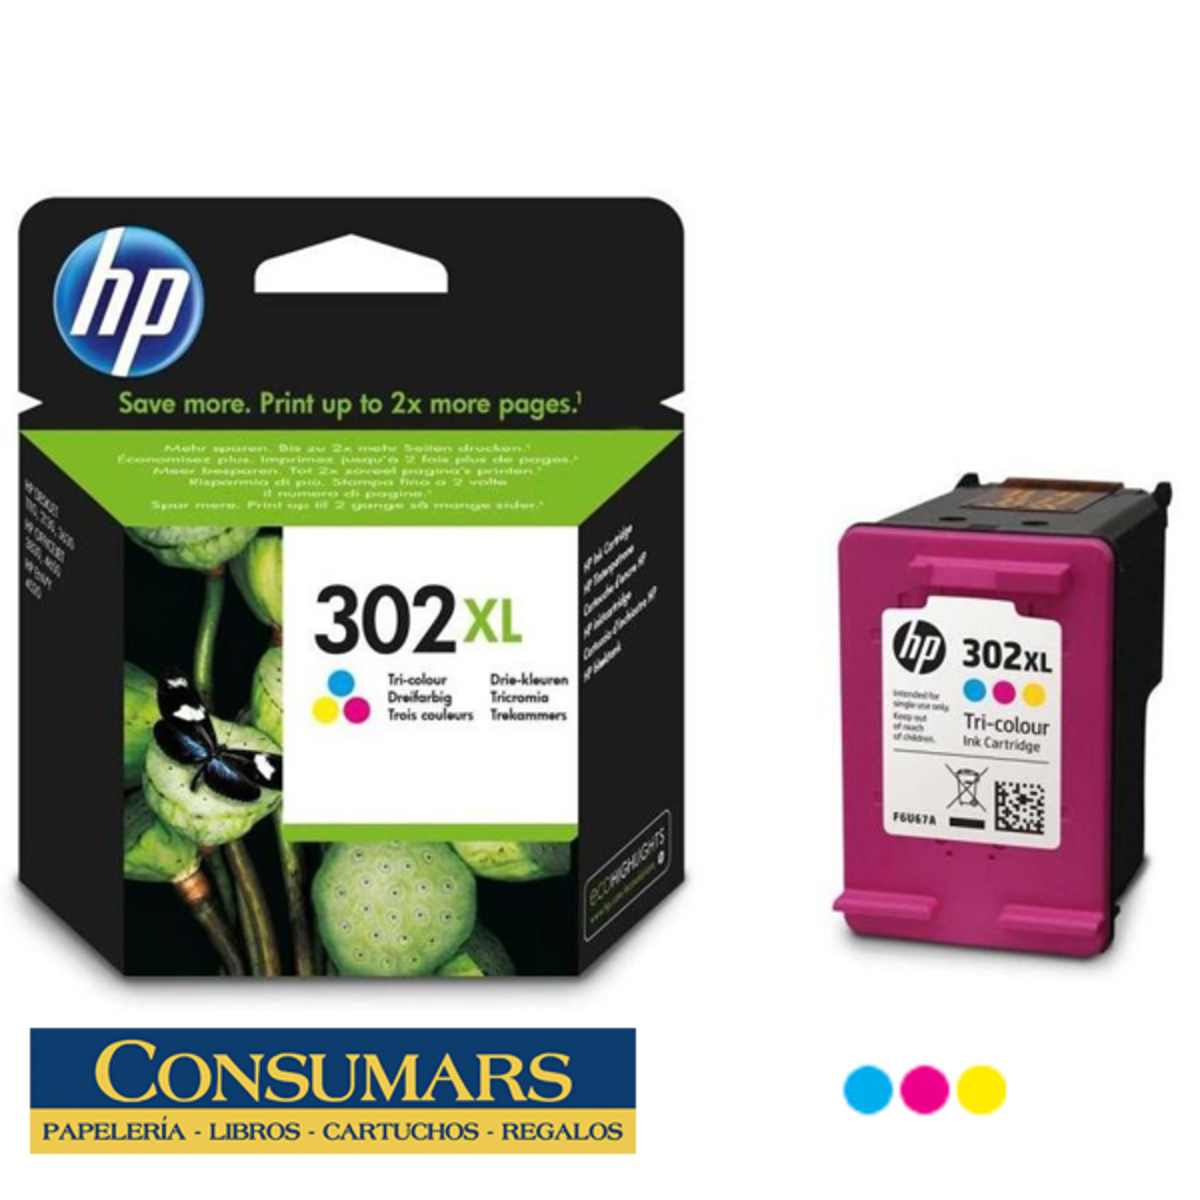 Cartucho de Tinta Original HP 302XL Tricolor